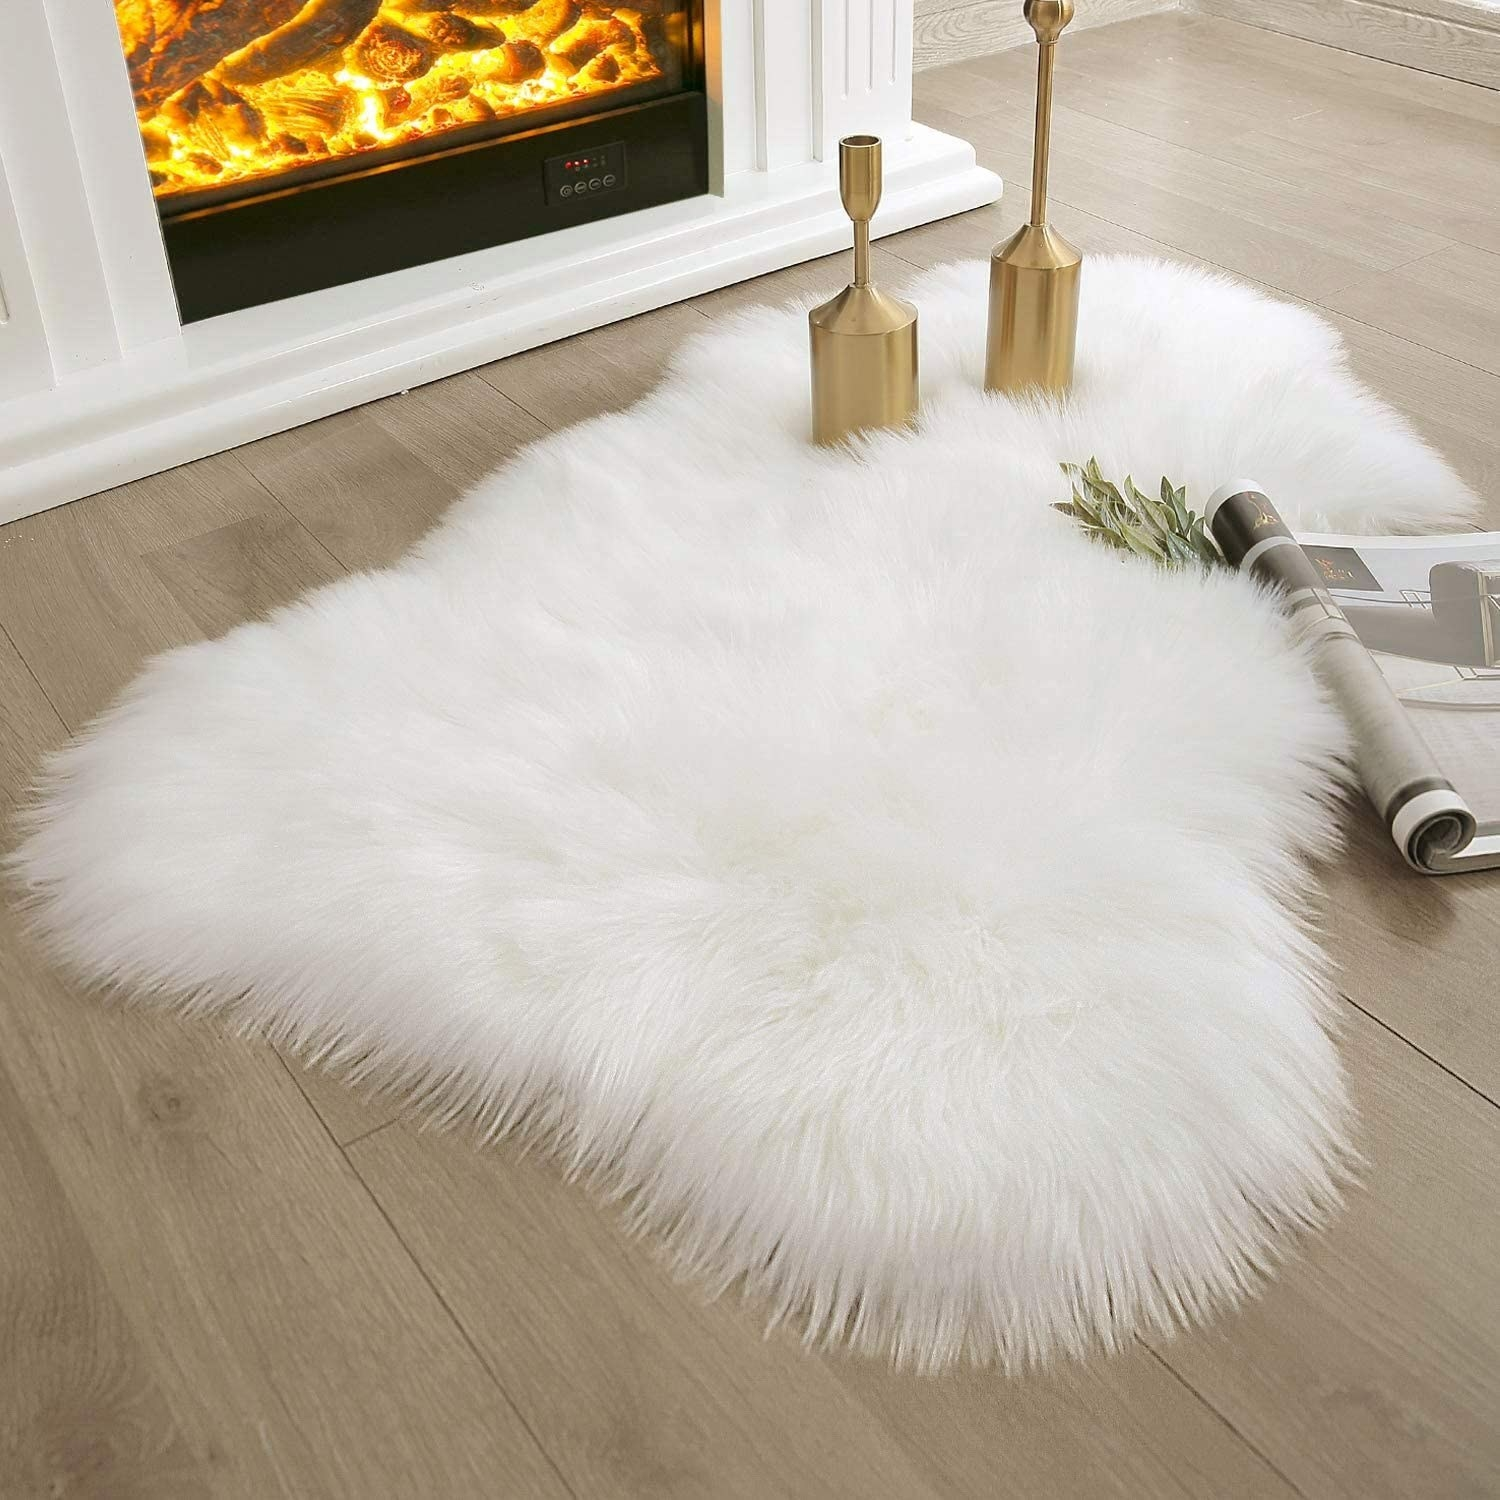 a small, asymmetrical sheepskin-shaped rug with white faux fur in front of a fireplace